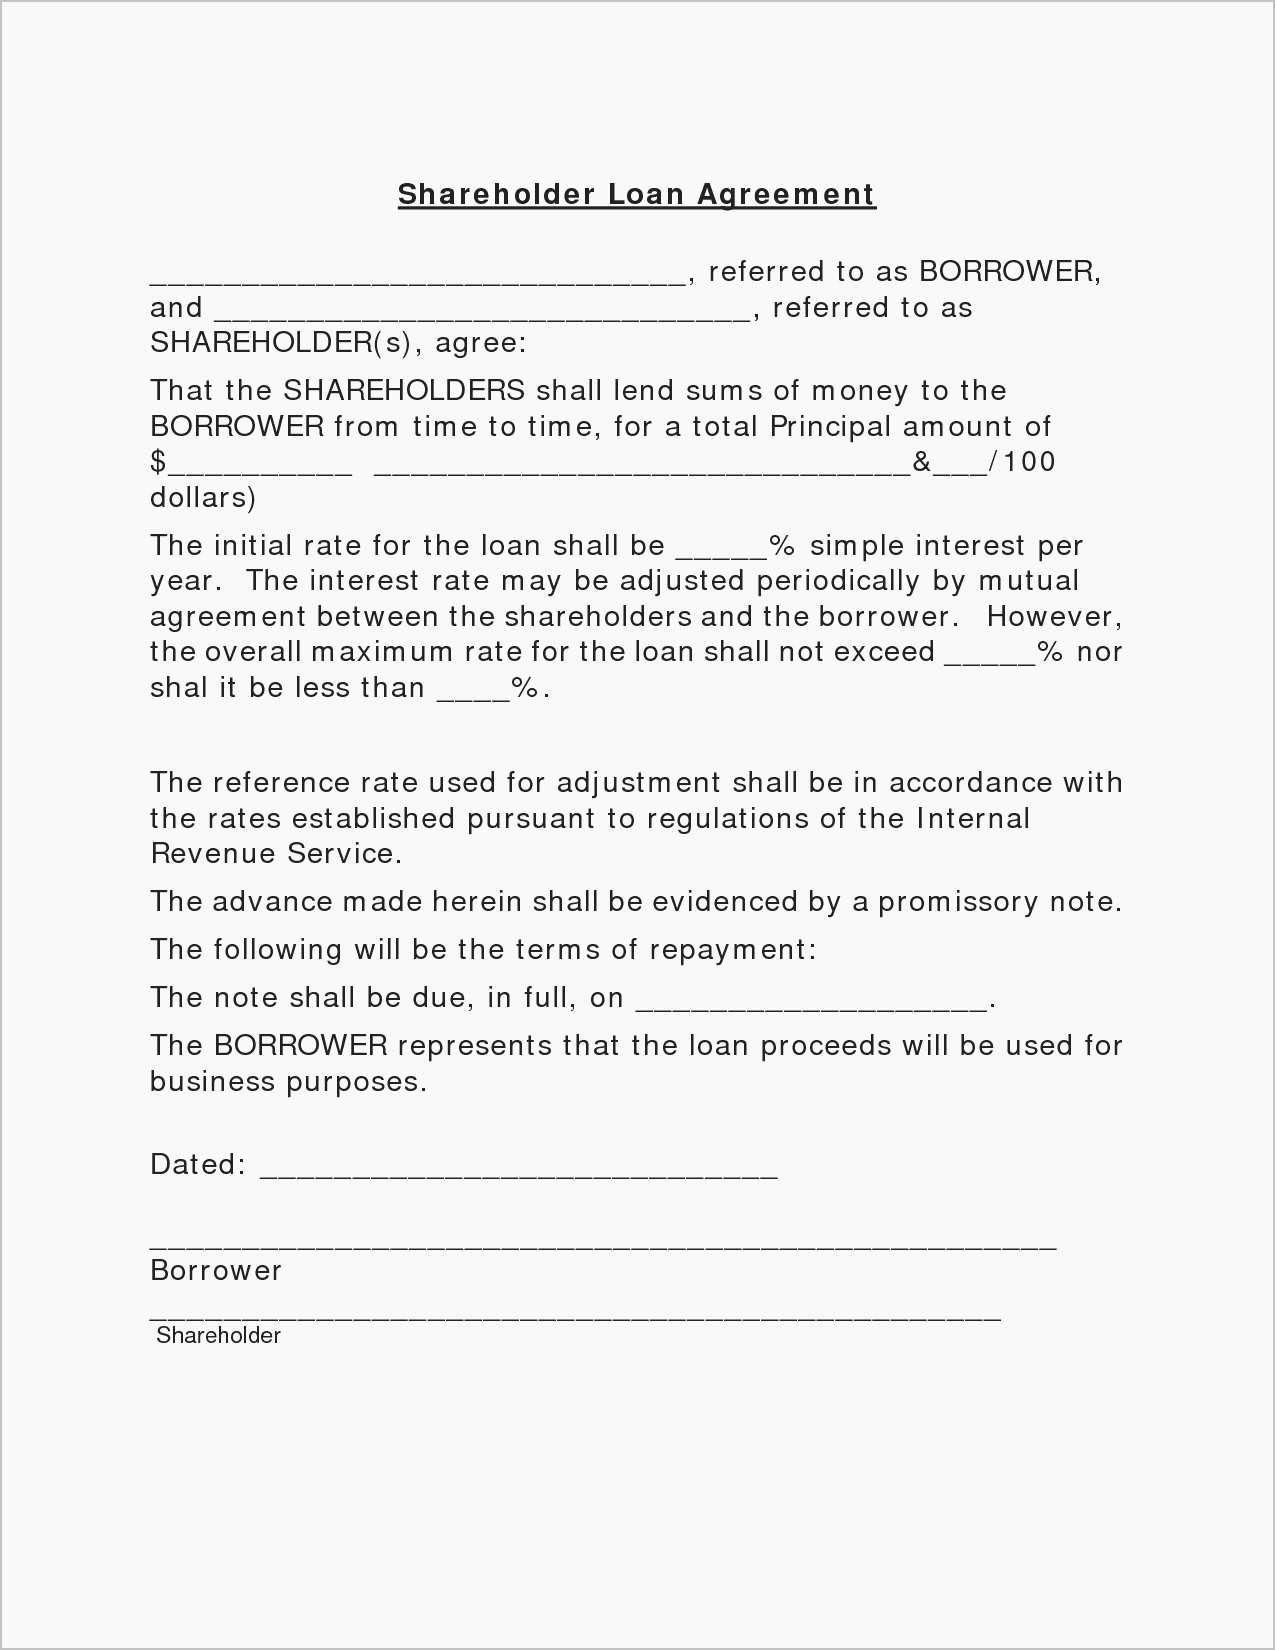 Separation Agreement Template Word Awesome Separation Agreement Template Word Uk Inspirational